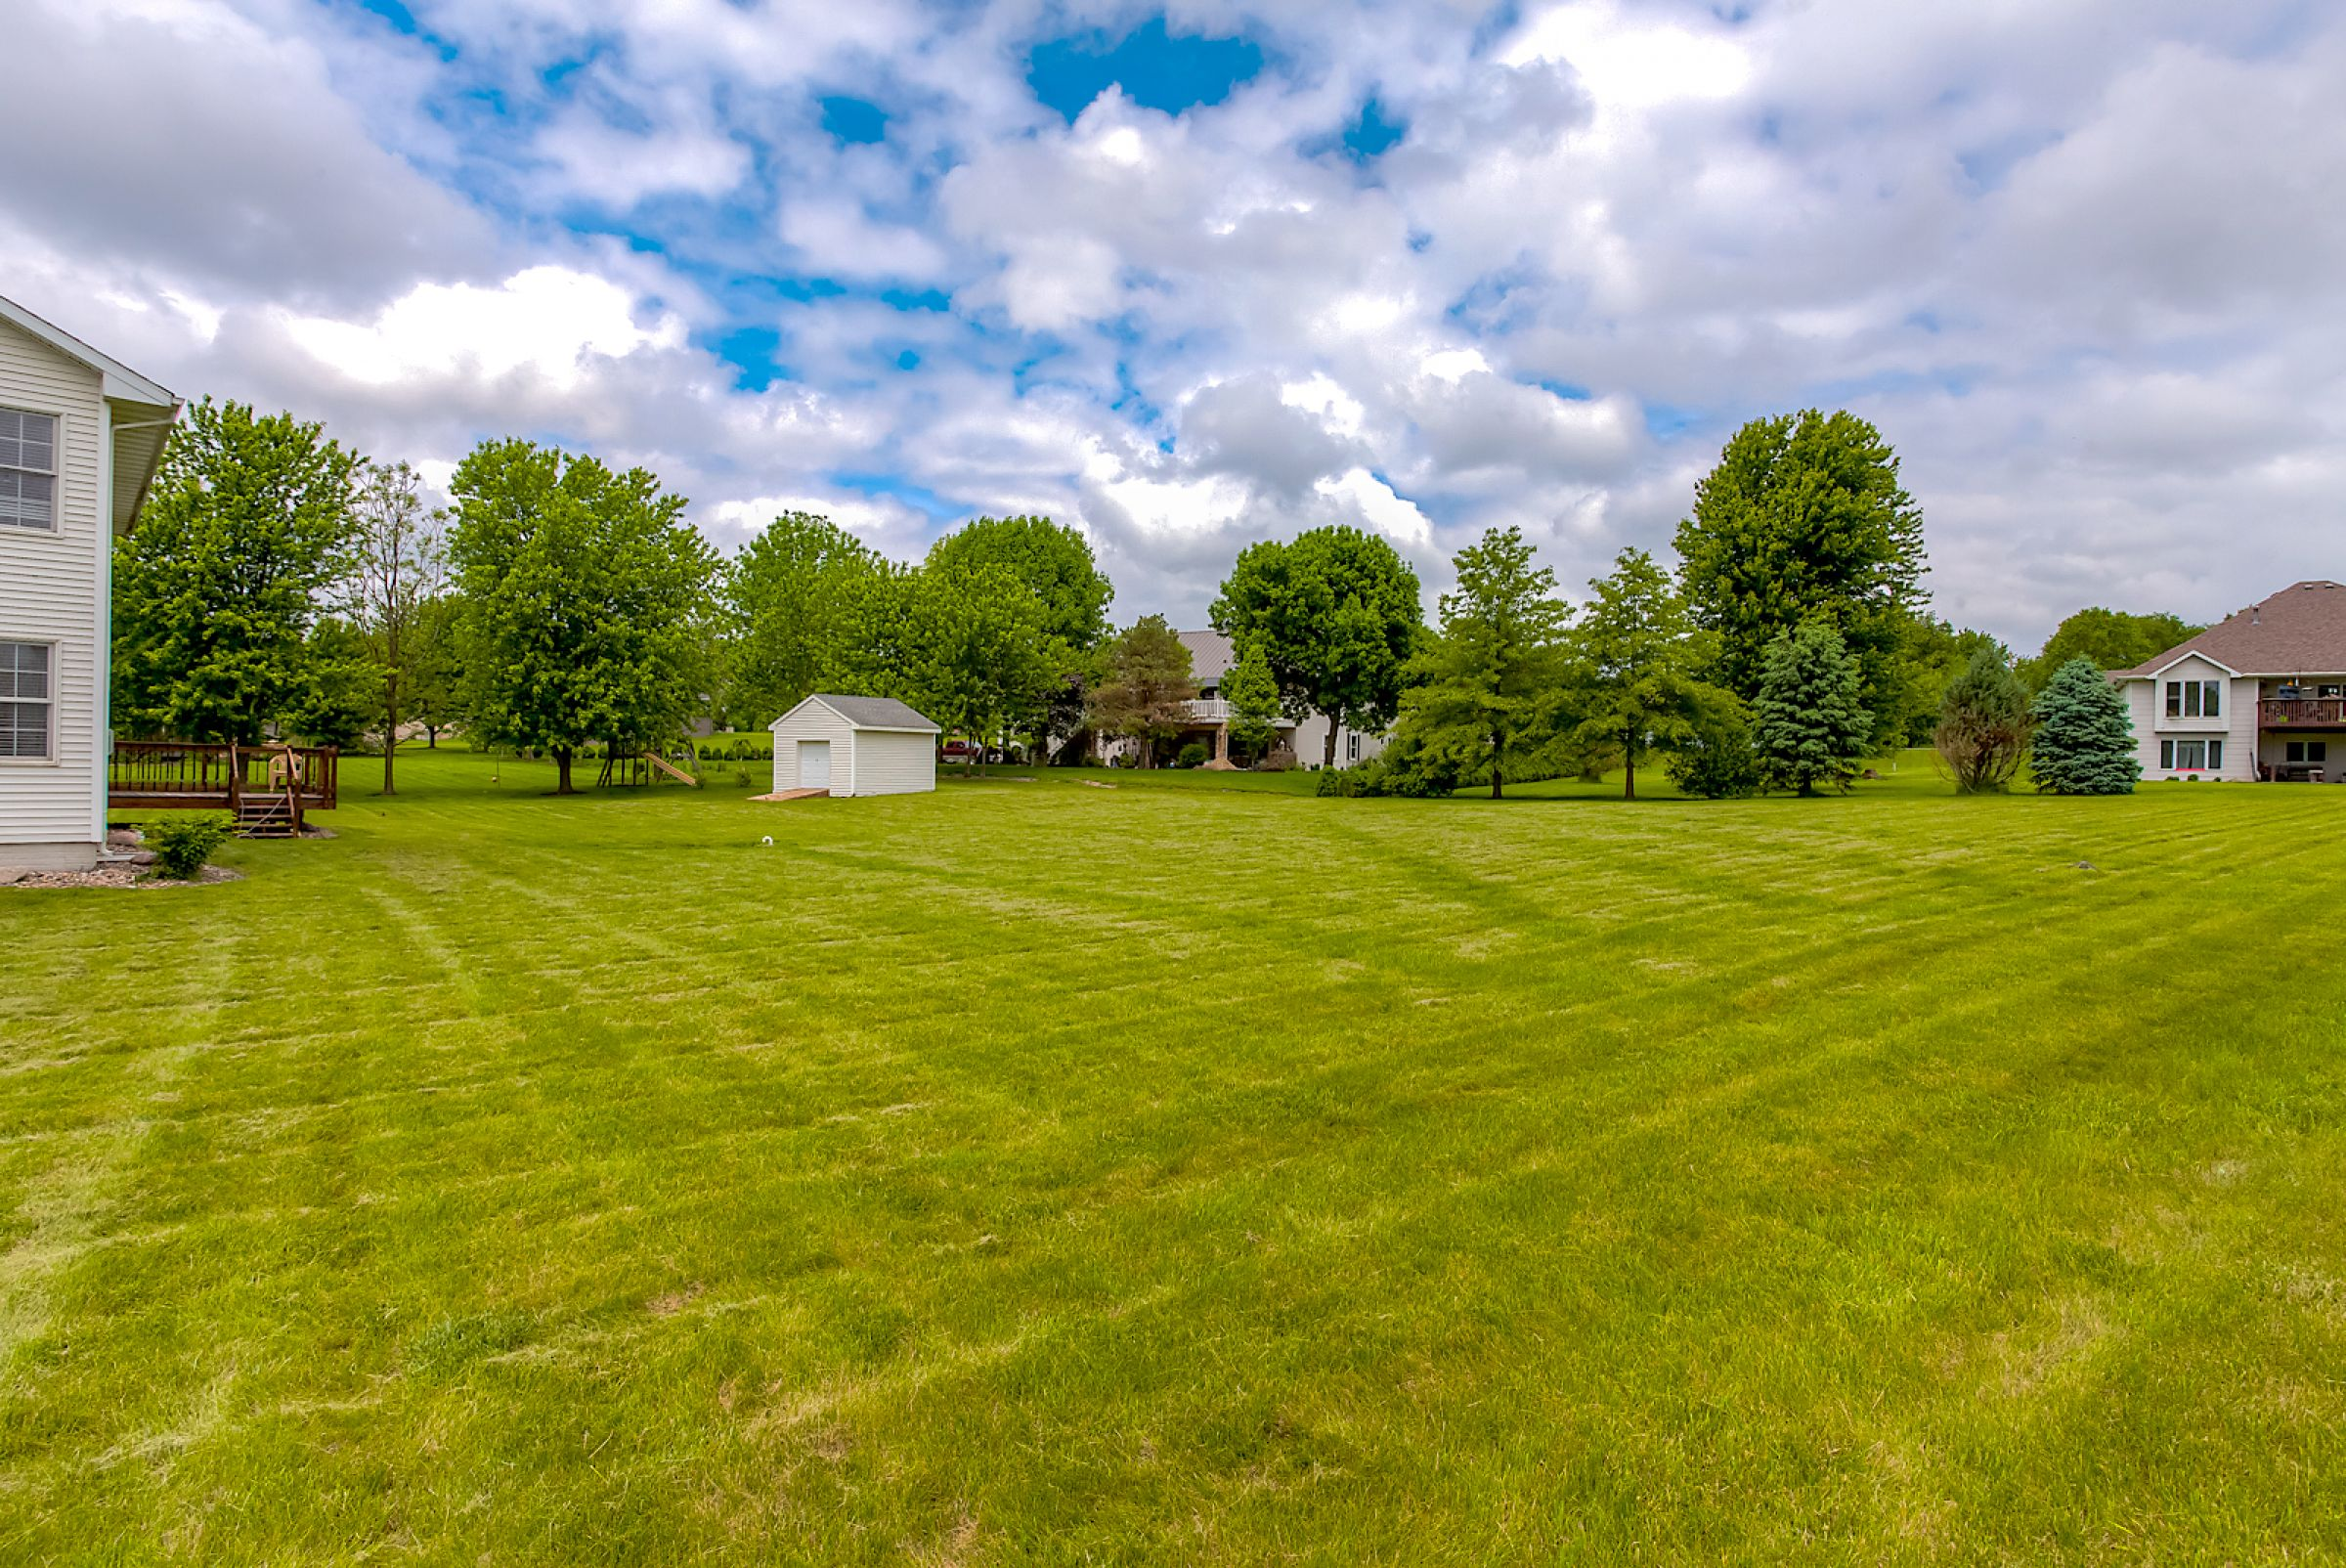 residential-warren-county-iowa-1-acres-listing-number-14999-4-2020-05-29-125418.jpg